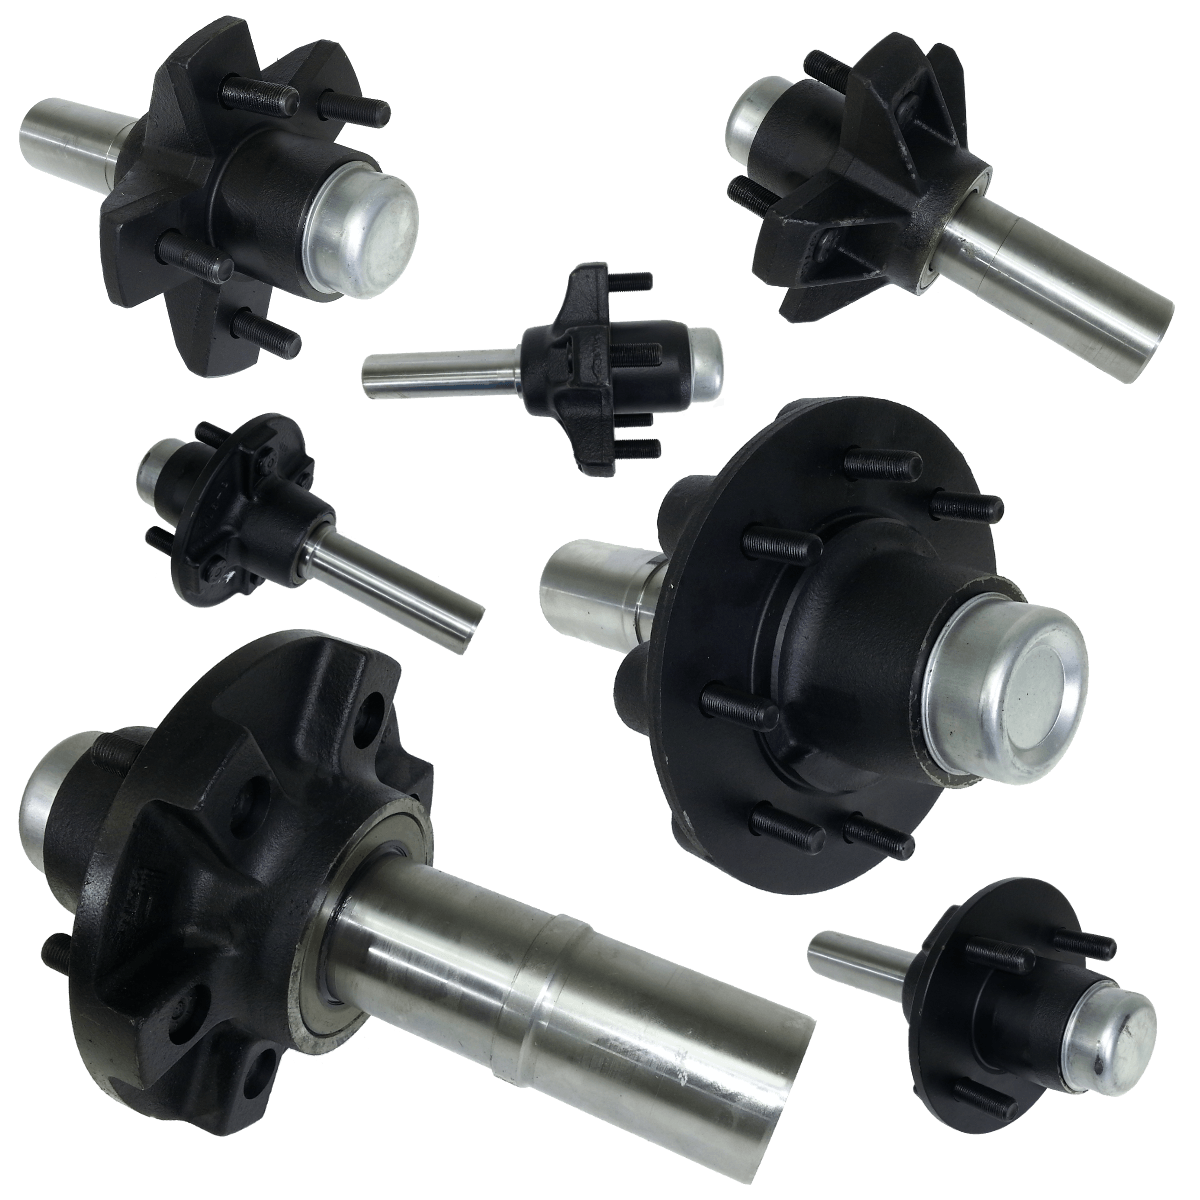 Trailer Hubs And Spindles : Hub spindle assemblies dl parts for trailers inc